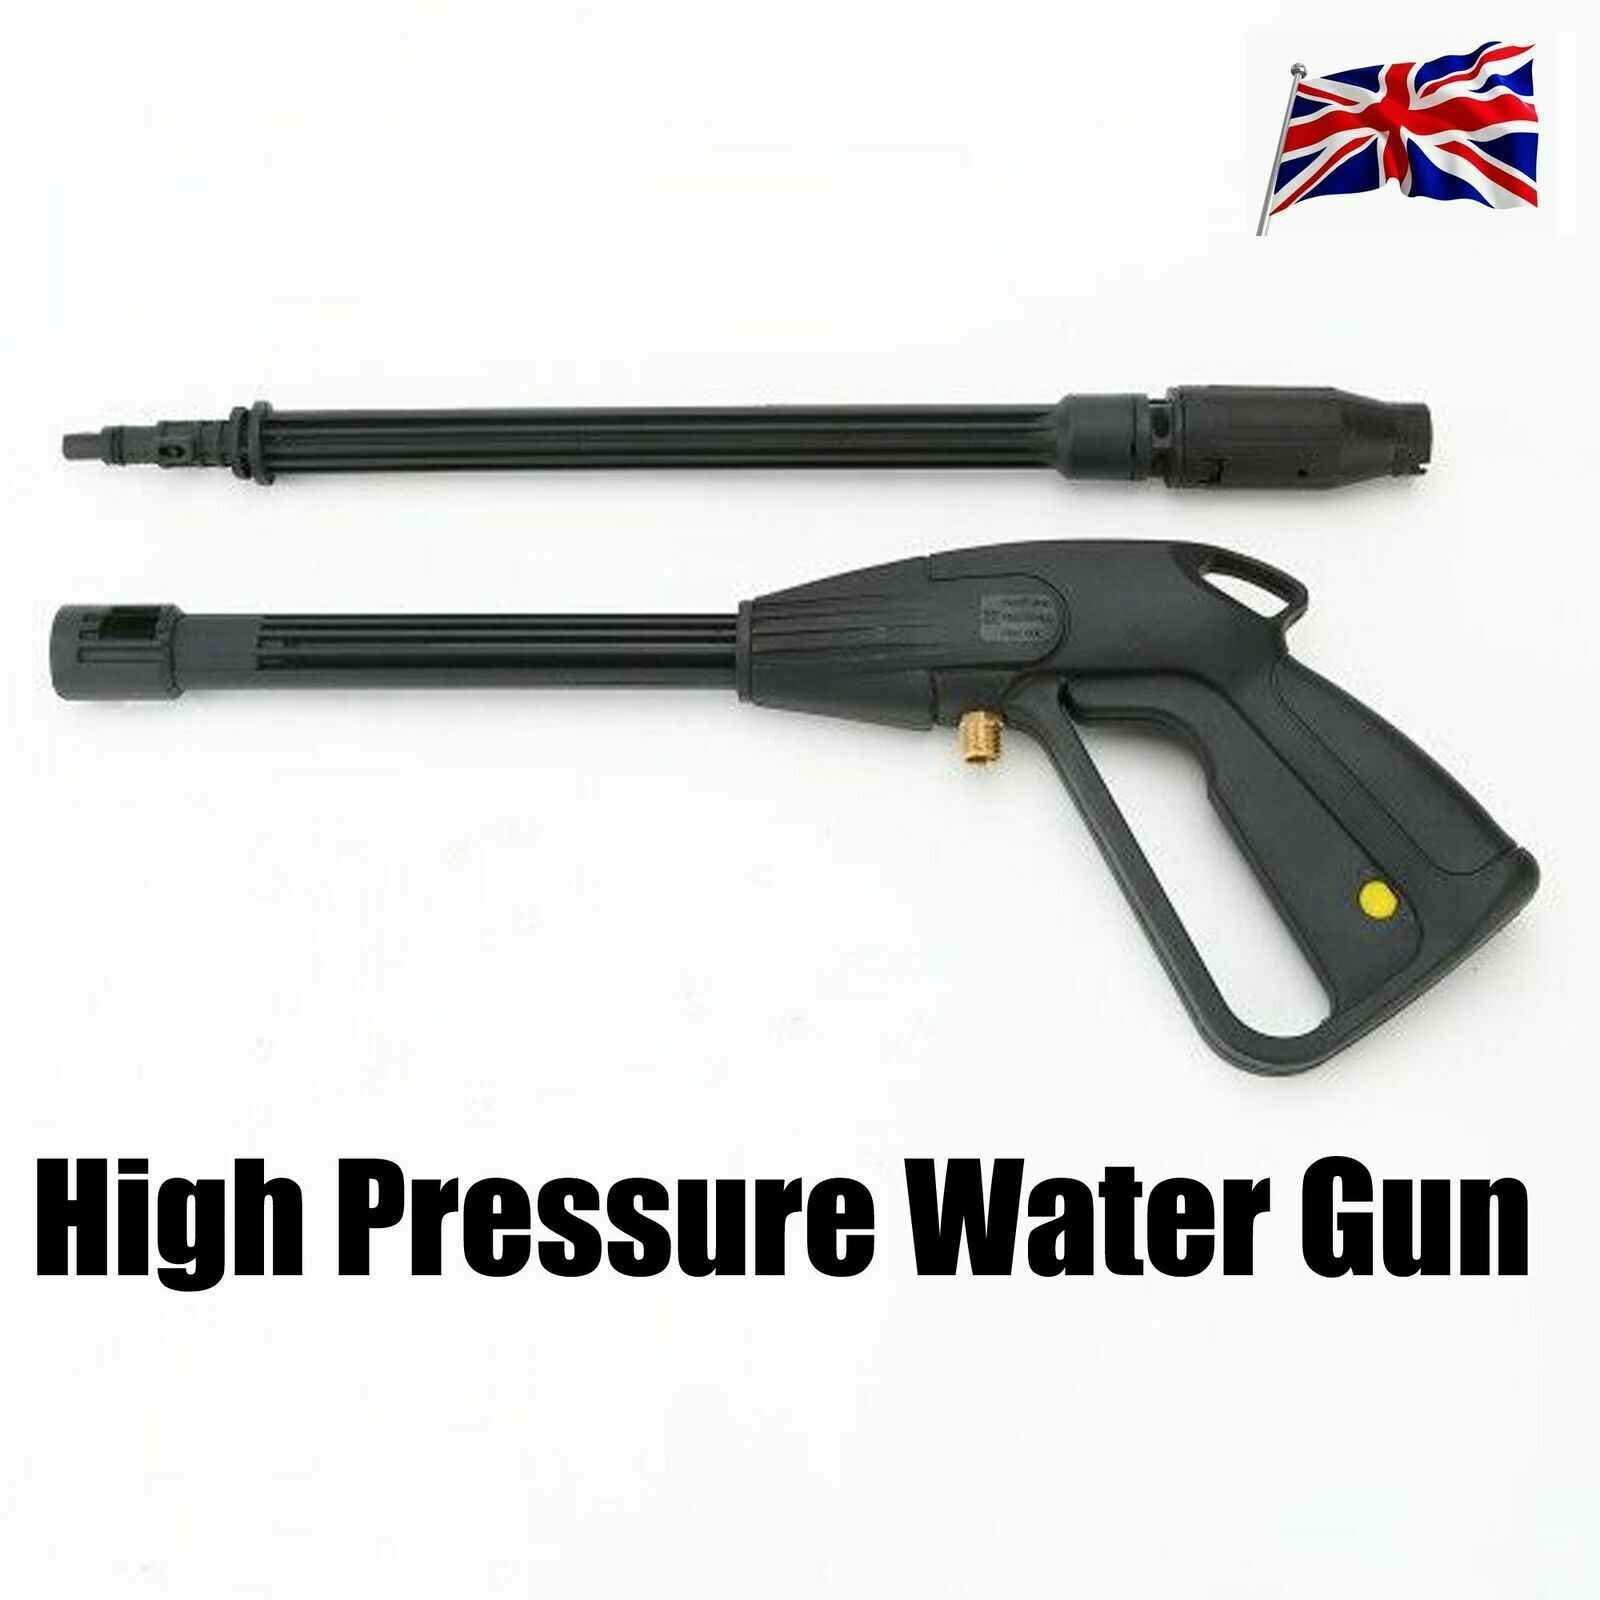 160 Bars High Pressure Washer Spray Gun Jet Lance Trigger Wash Water Hose Fast